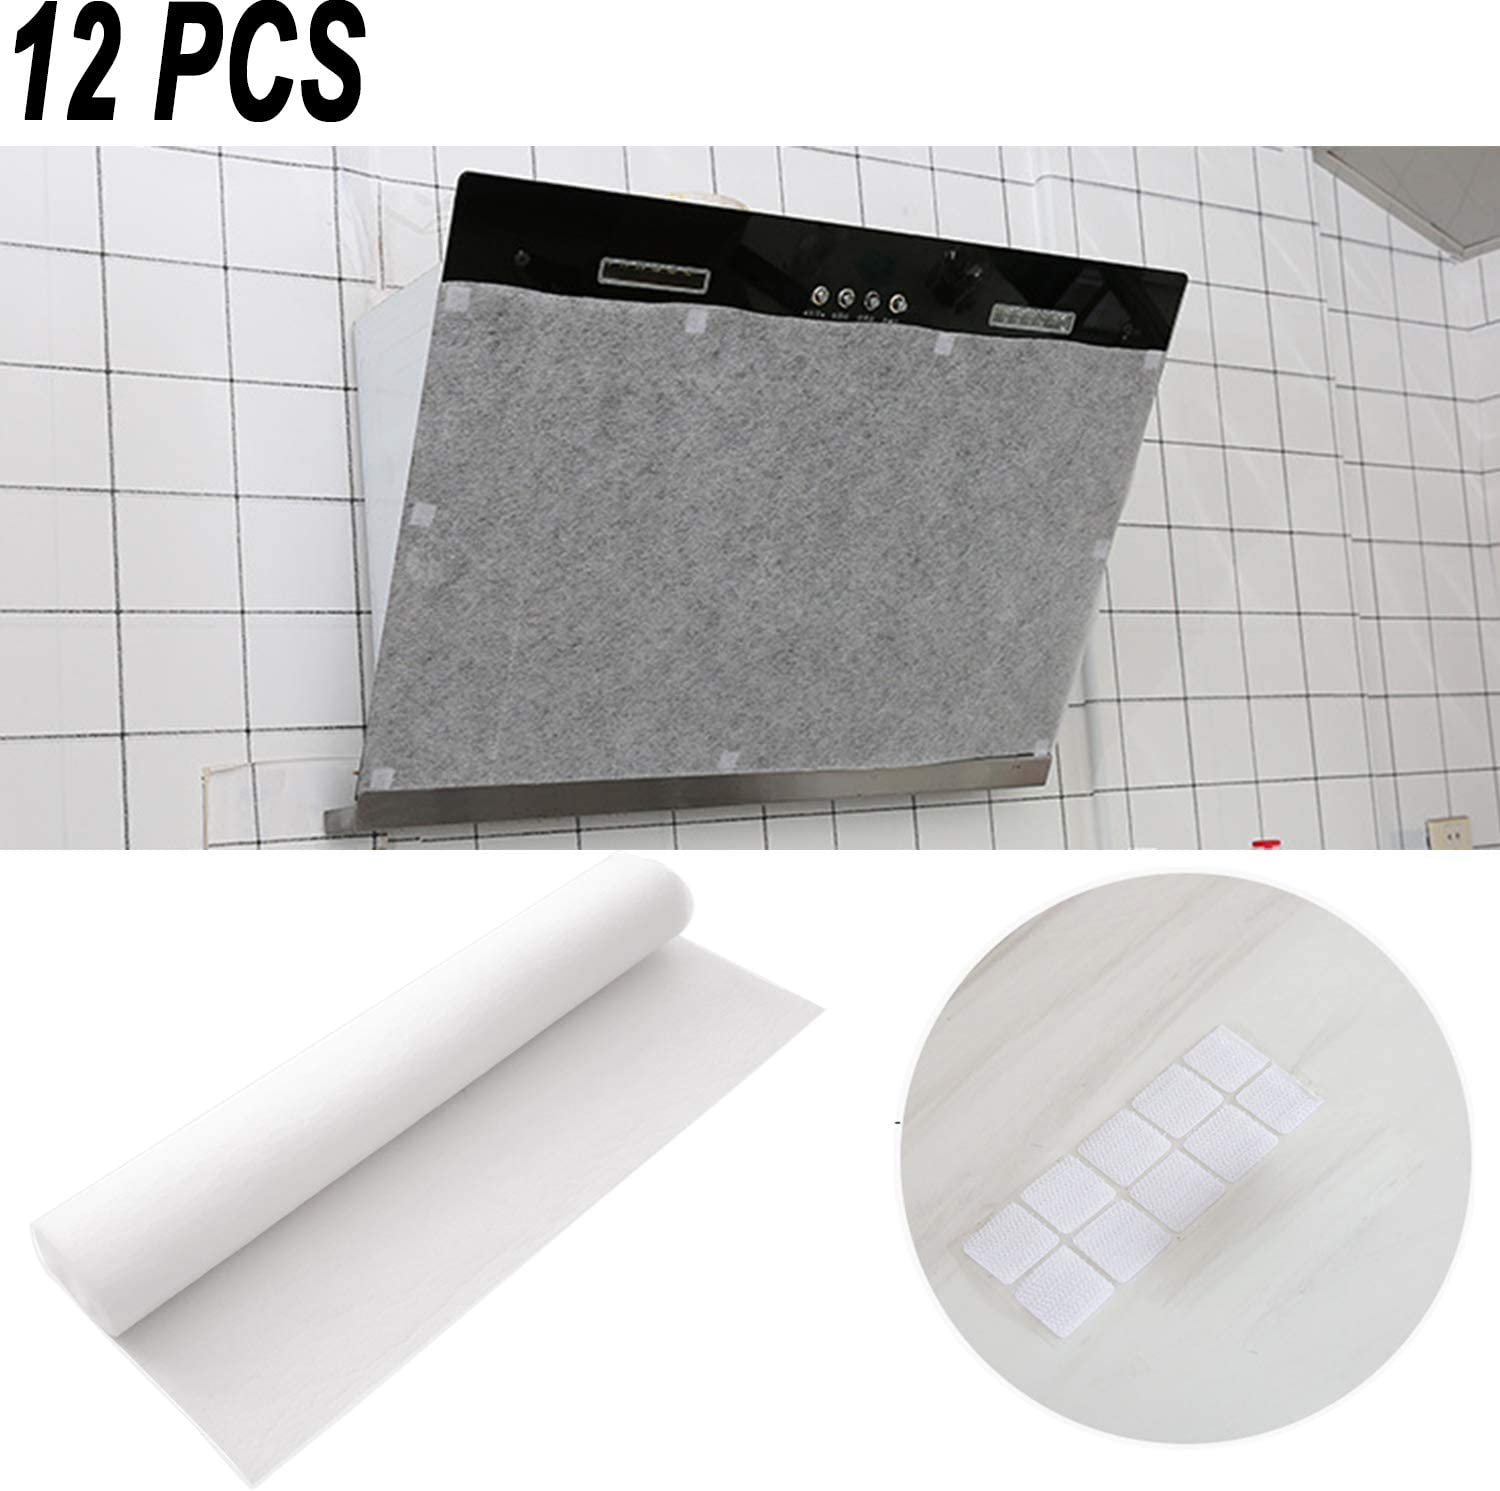 "12 PCS Range Hood Grease Filter, Kitchen Oil Filter Paper Transparent Durable Oil-Absorbing Paper Oil-Proof Sticker, Ideal for Range Hood Cleaning, 10 Magic Tape Included(17"" x 17.7"")"